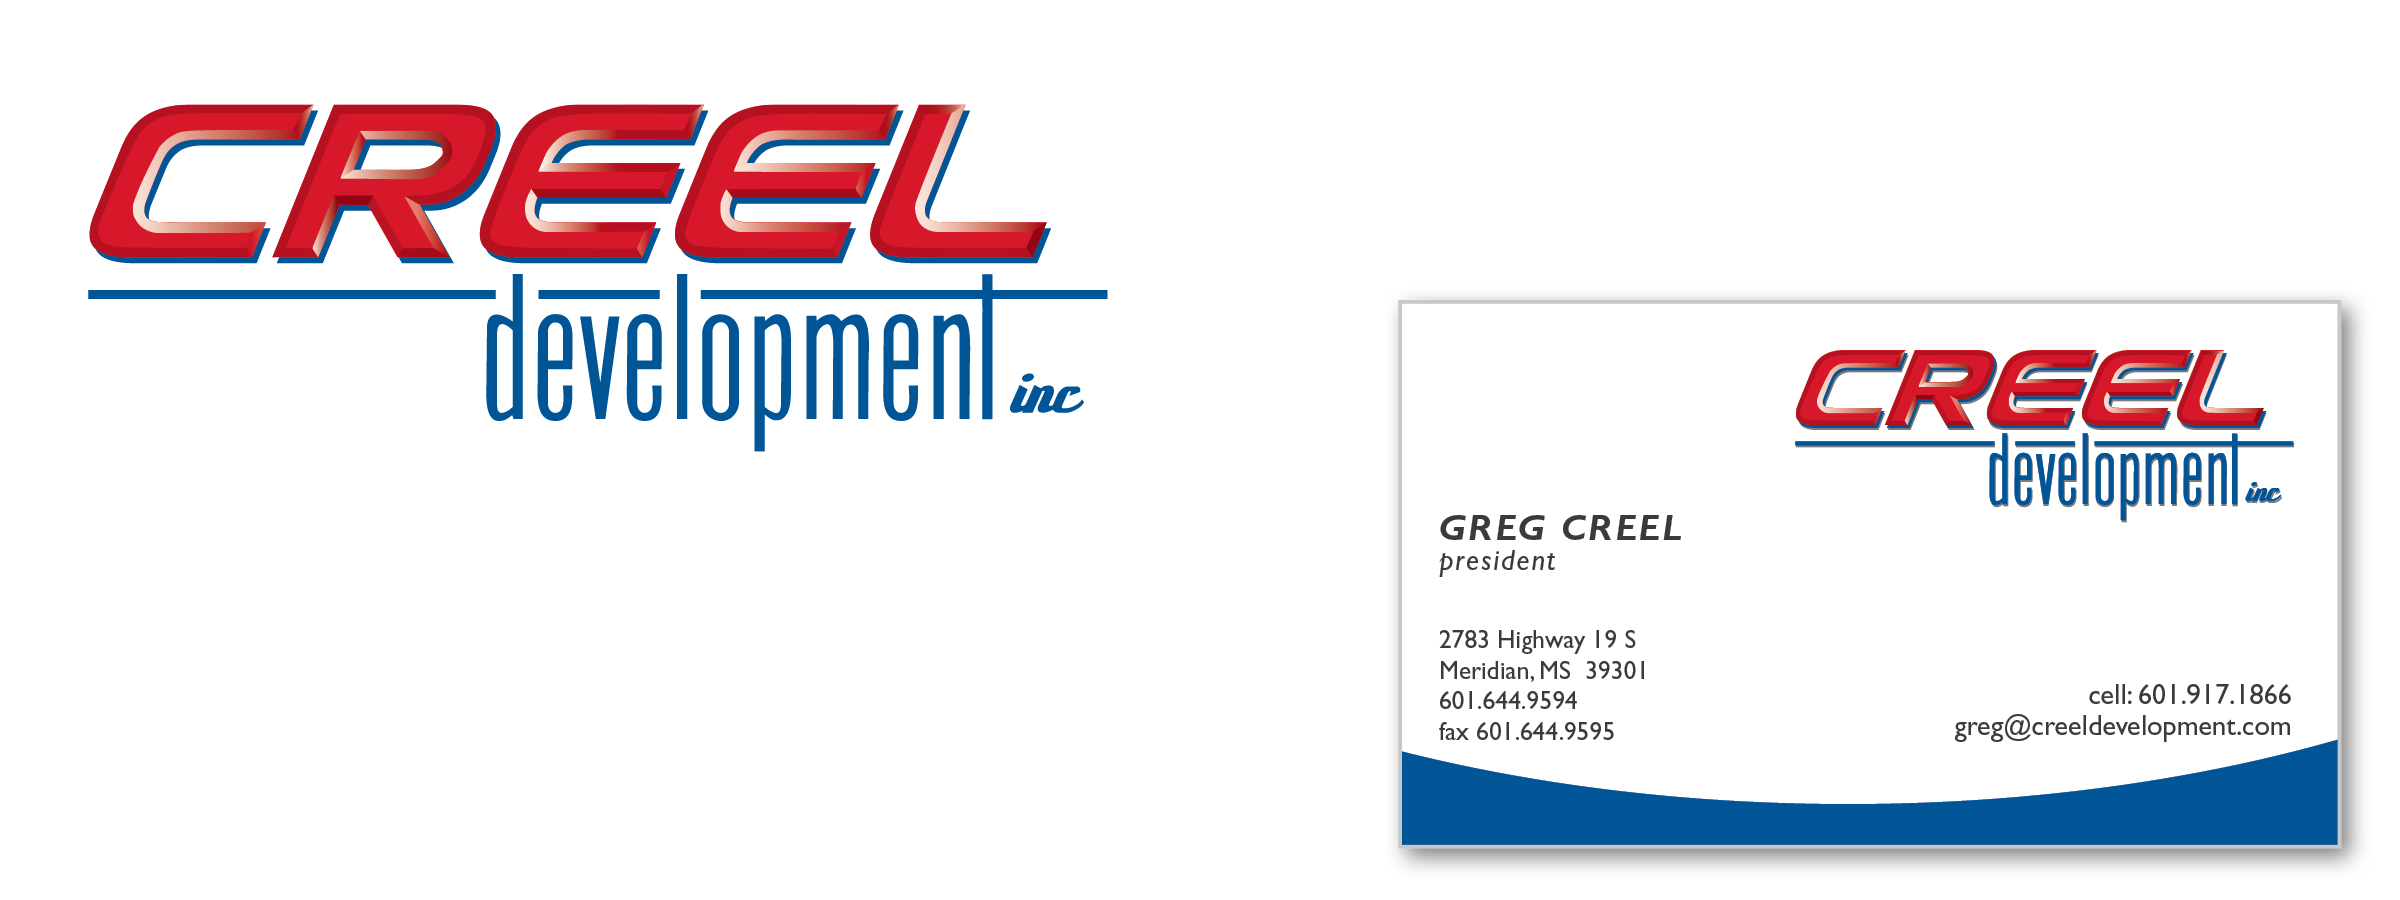 Creel Development Branding